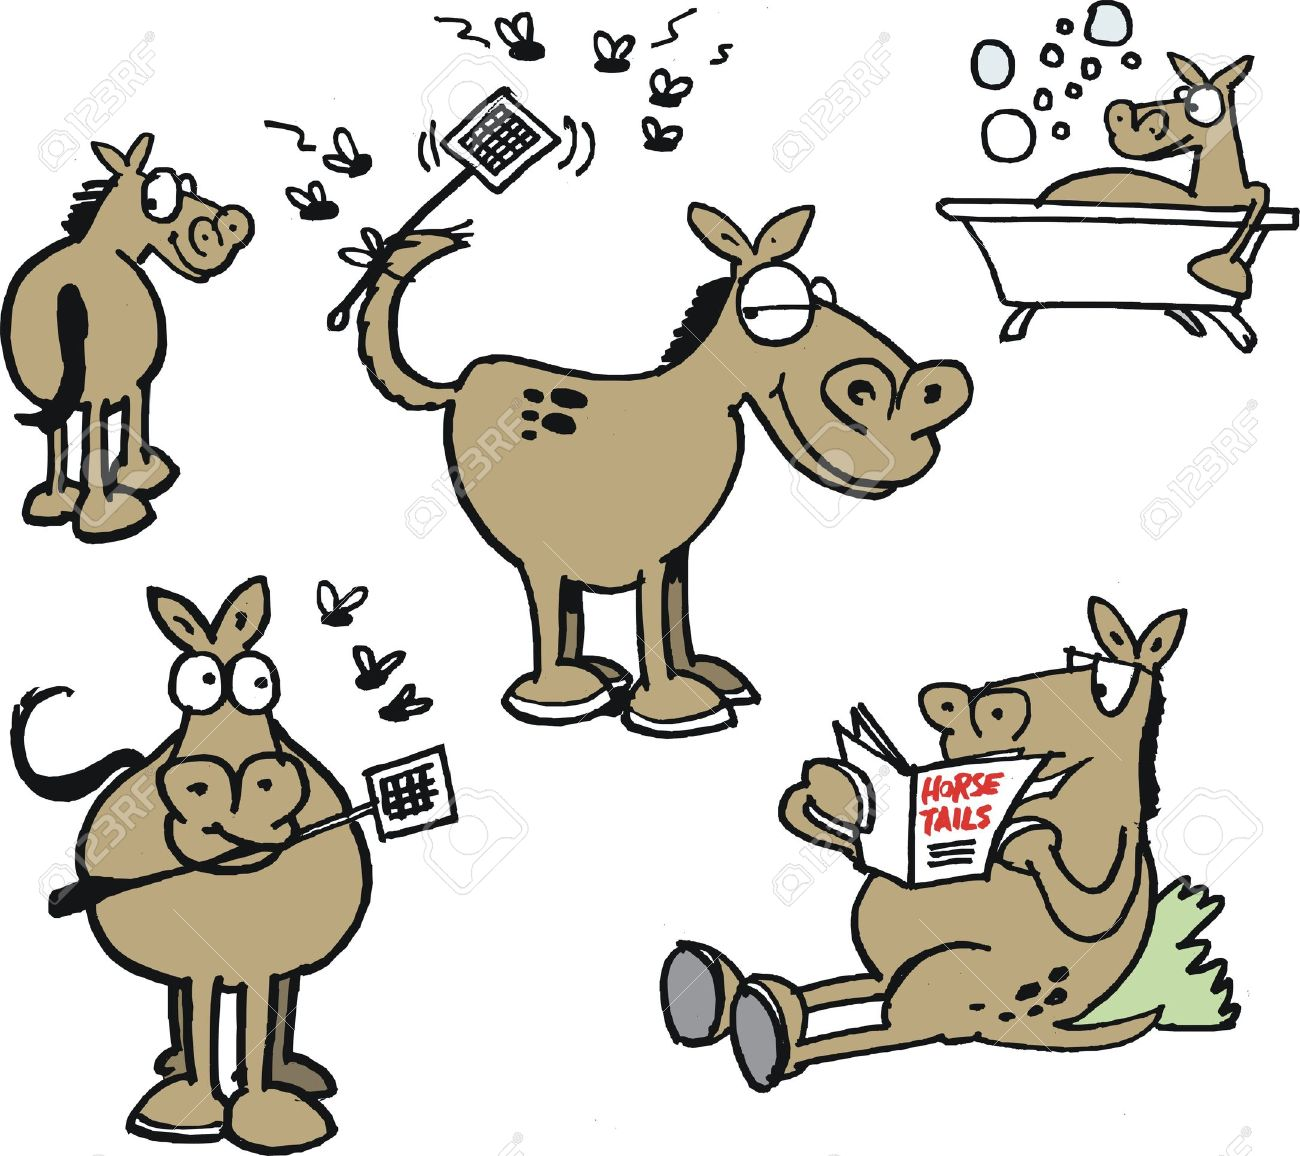 Vector Cartoon Showing Group Of Funny Horses And Flies Royalty Free Cliparts Vectors And Stock Illustration Image 23860984